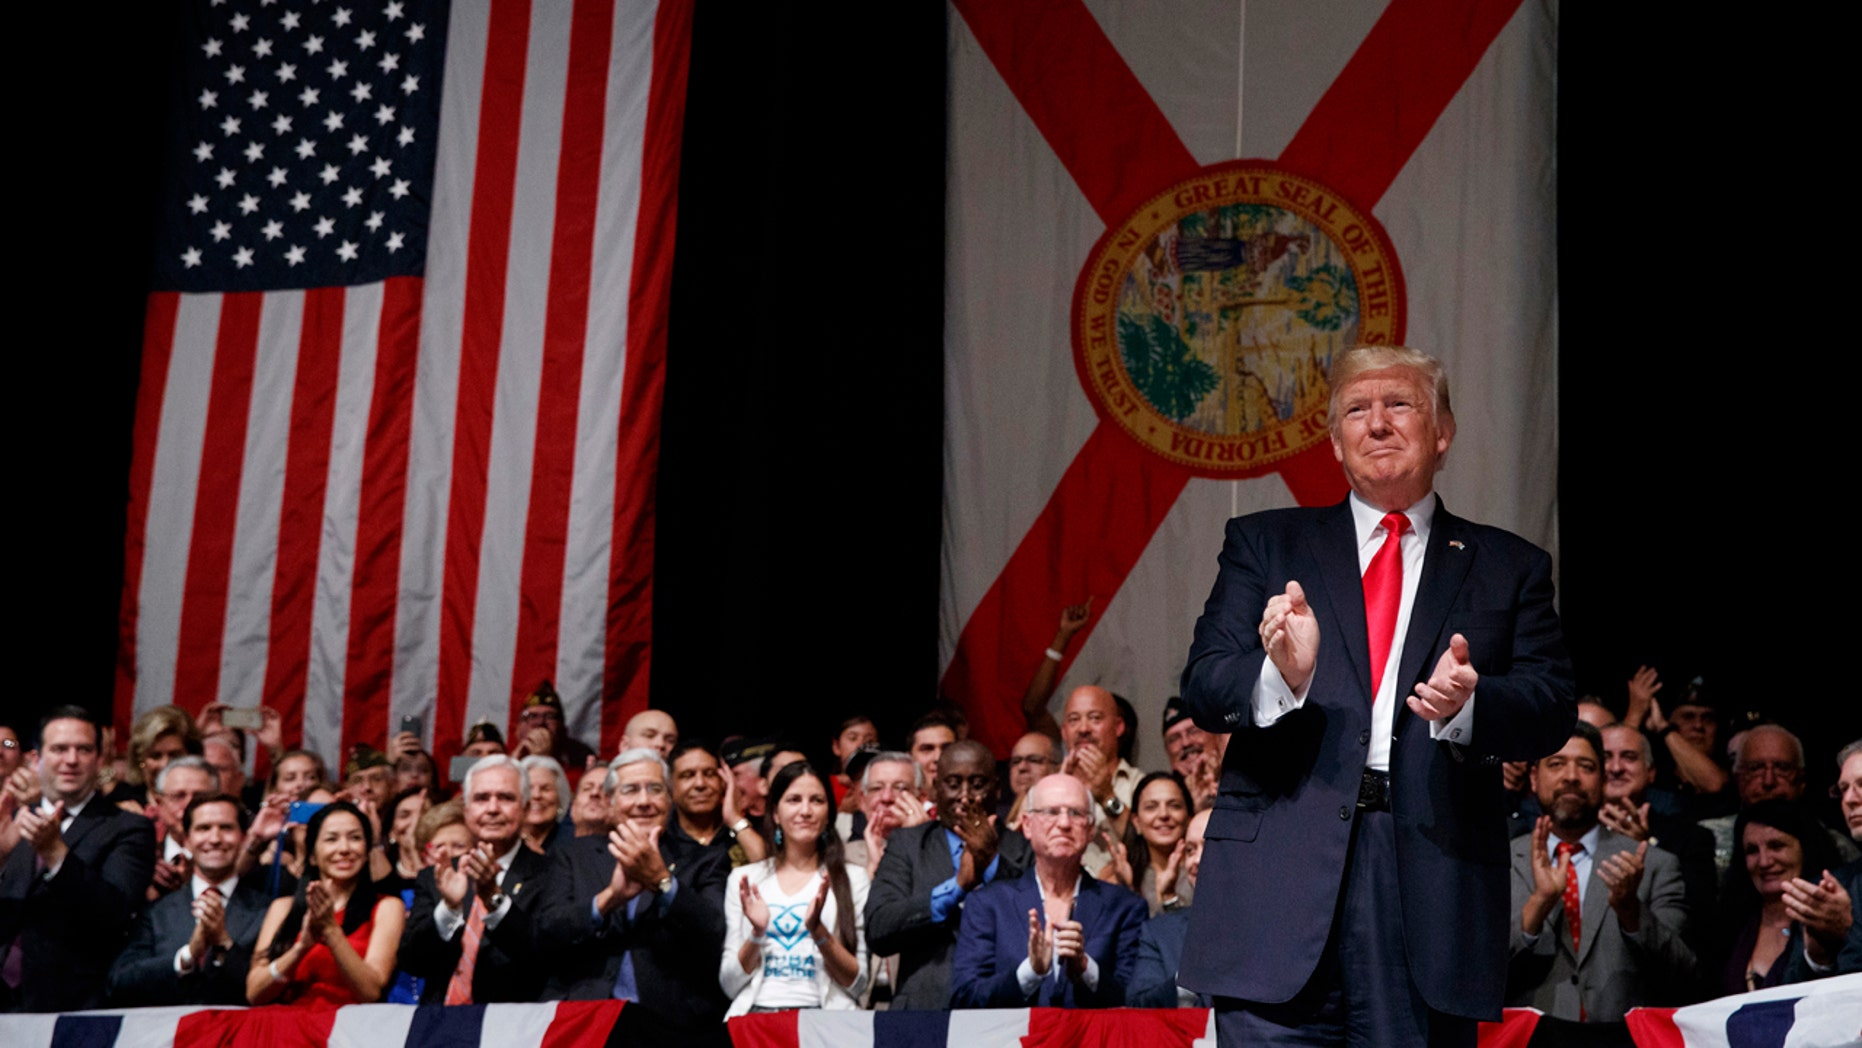 June 16, 2017: President Donald Trump applauds as he arrives to speak about Cuba policy in Miami. The president announced changes to Obama-era Cuba policy, and challenged the Castro government to negotiate a better deal.